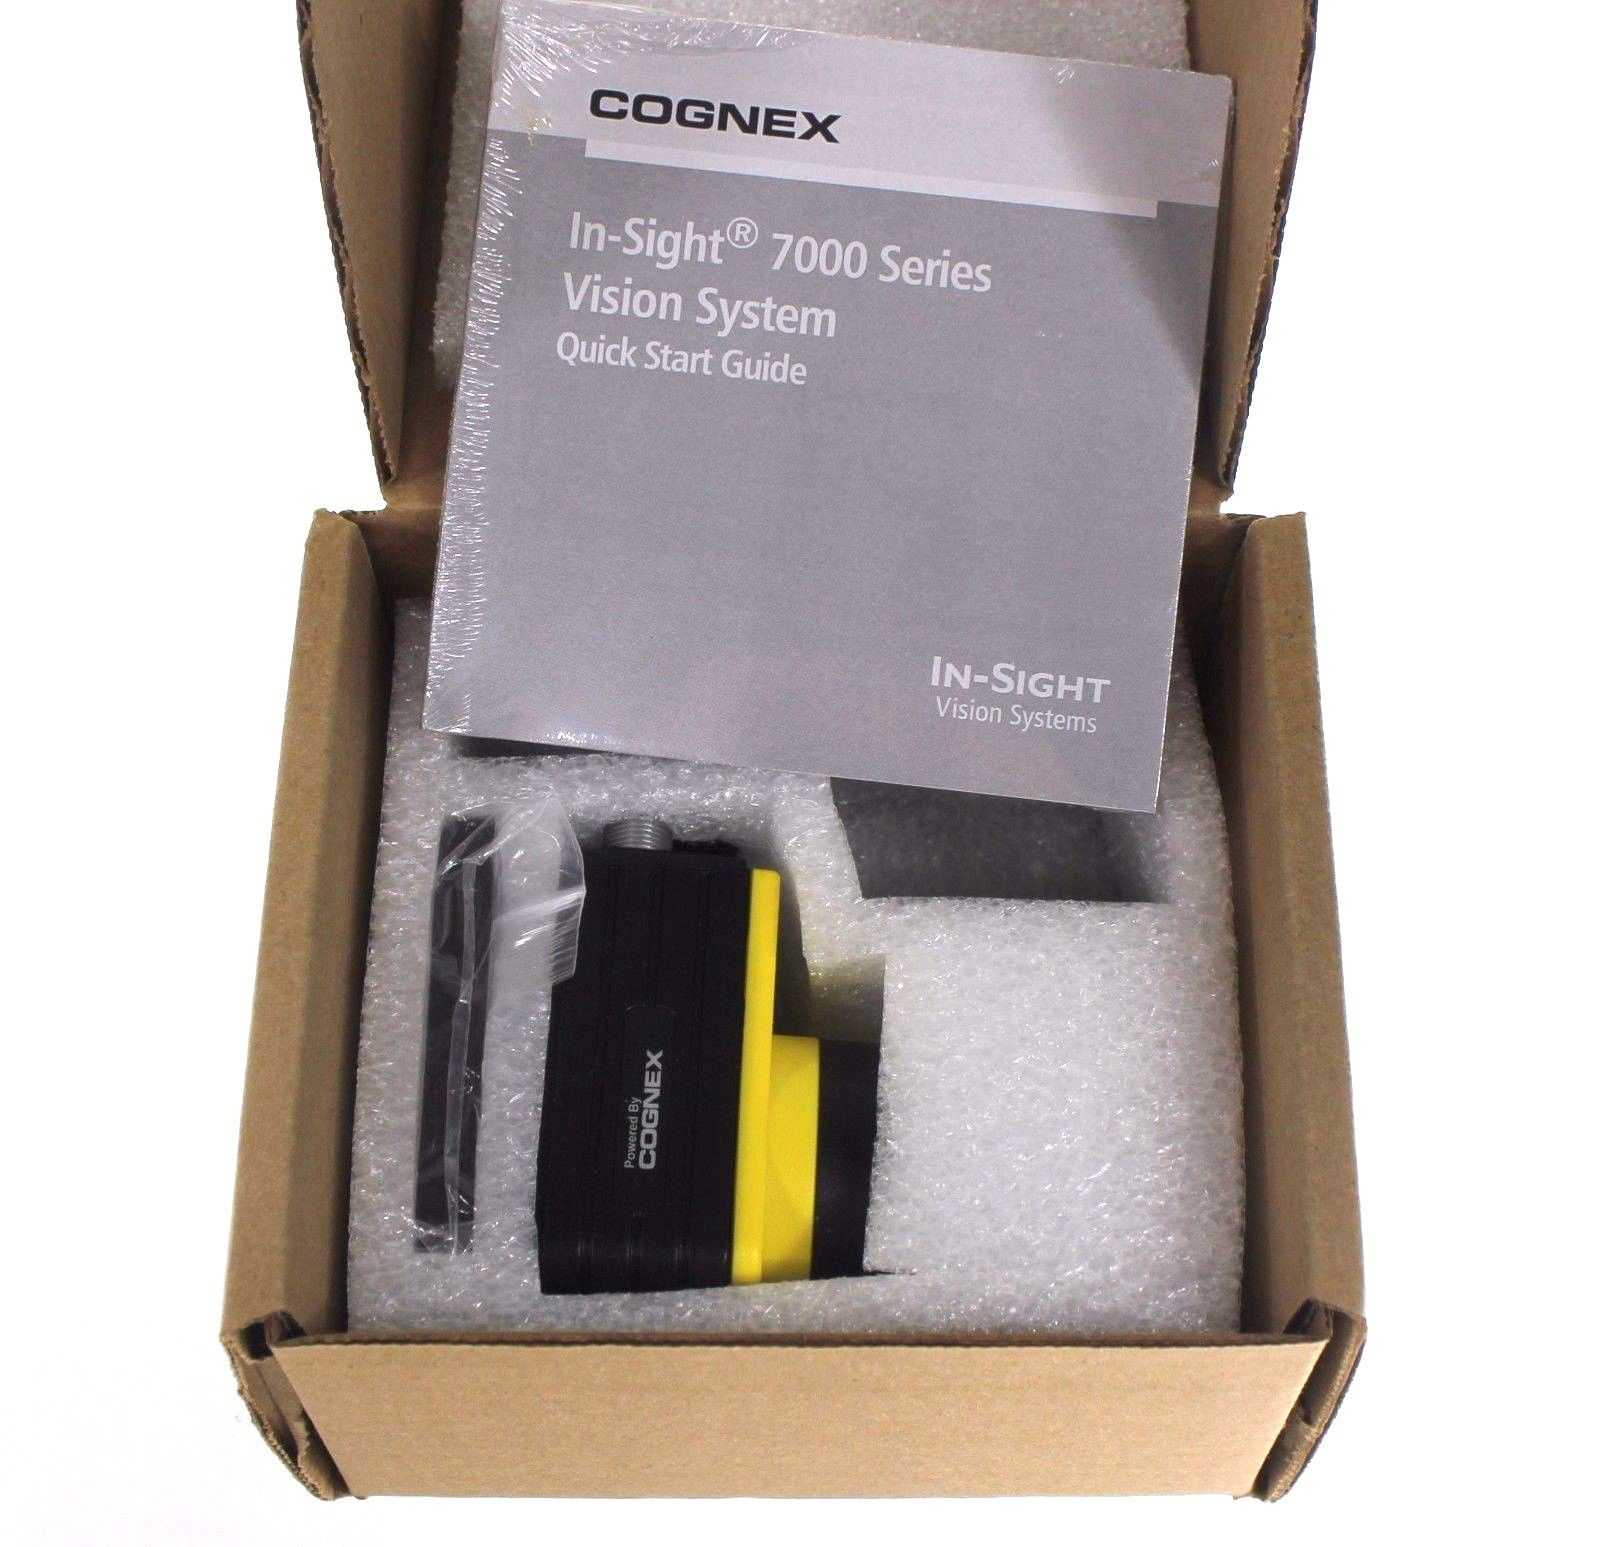 New 2015 Date Cognex In-Sight 7000 IS7200-11 Camera W/ PATMAX 1S7200 IS720011